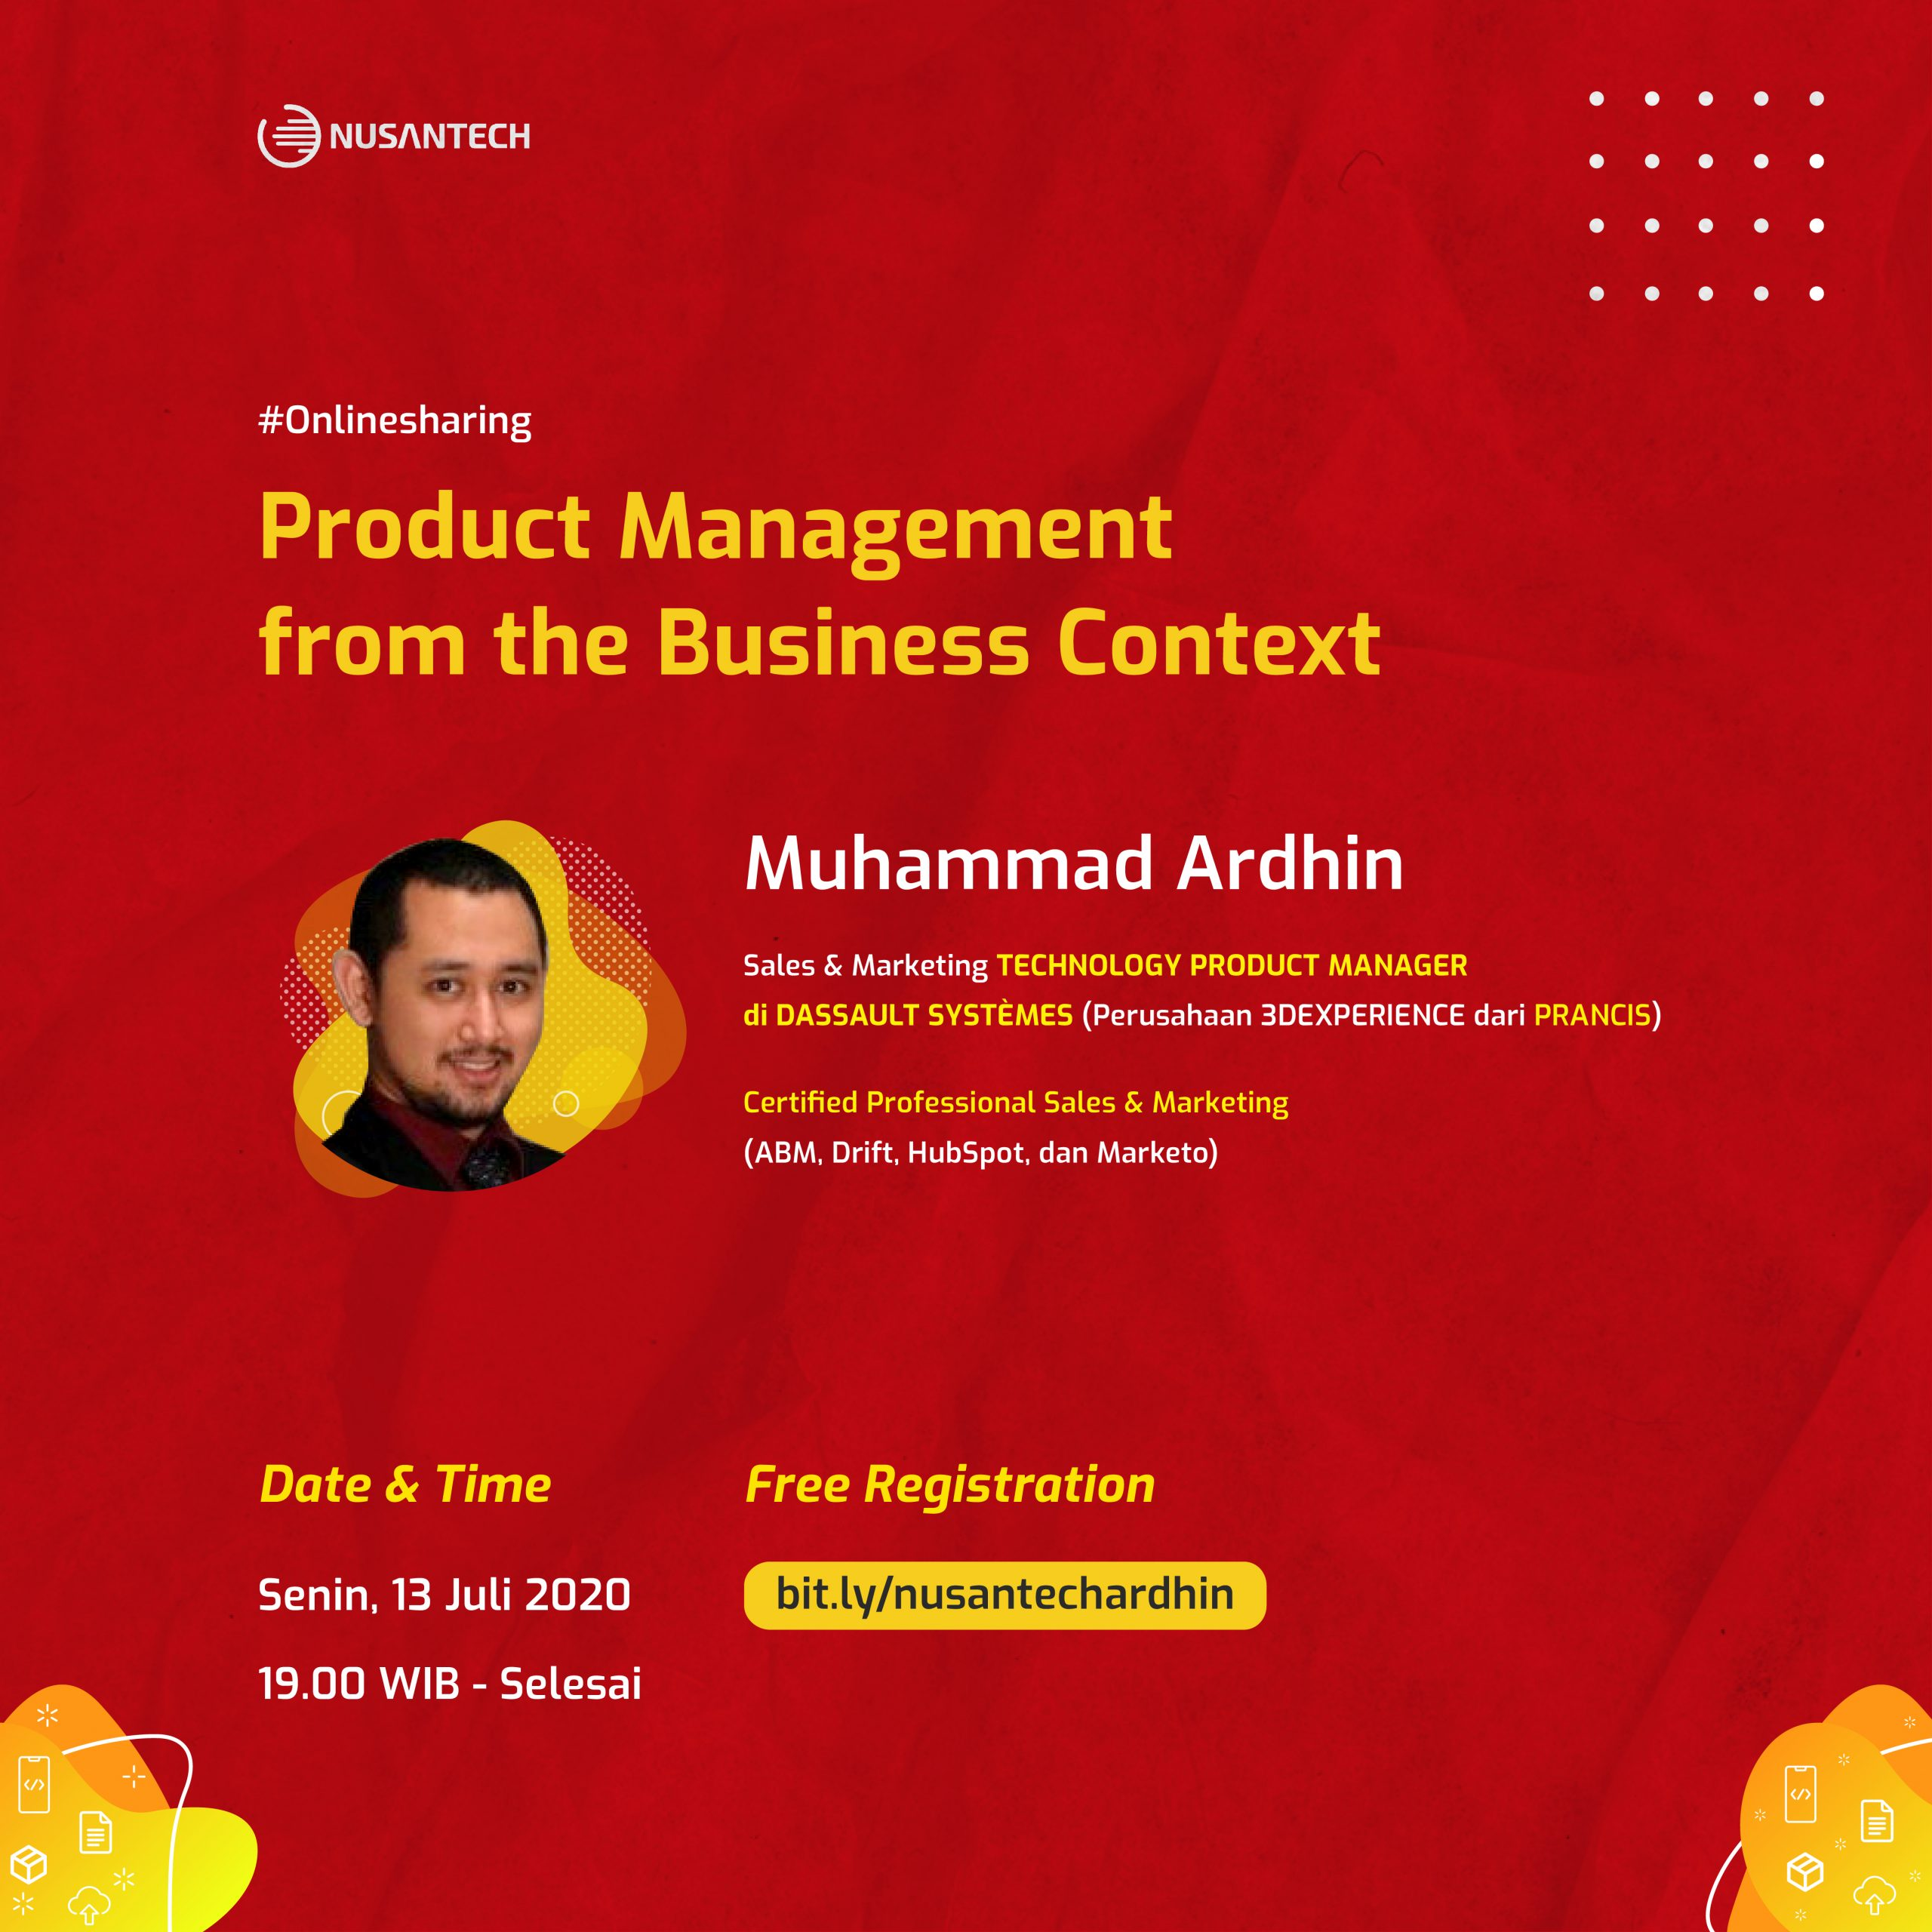 Product Management from the Business Context